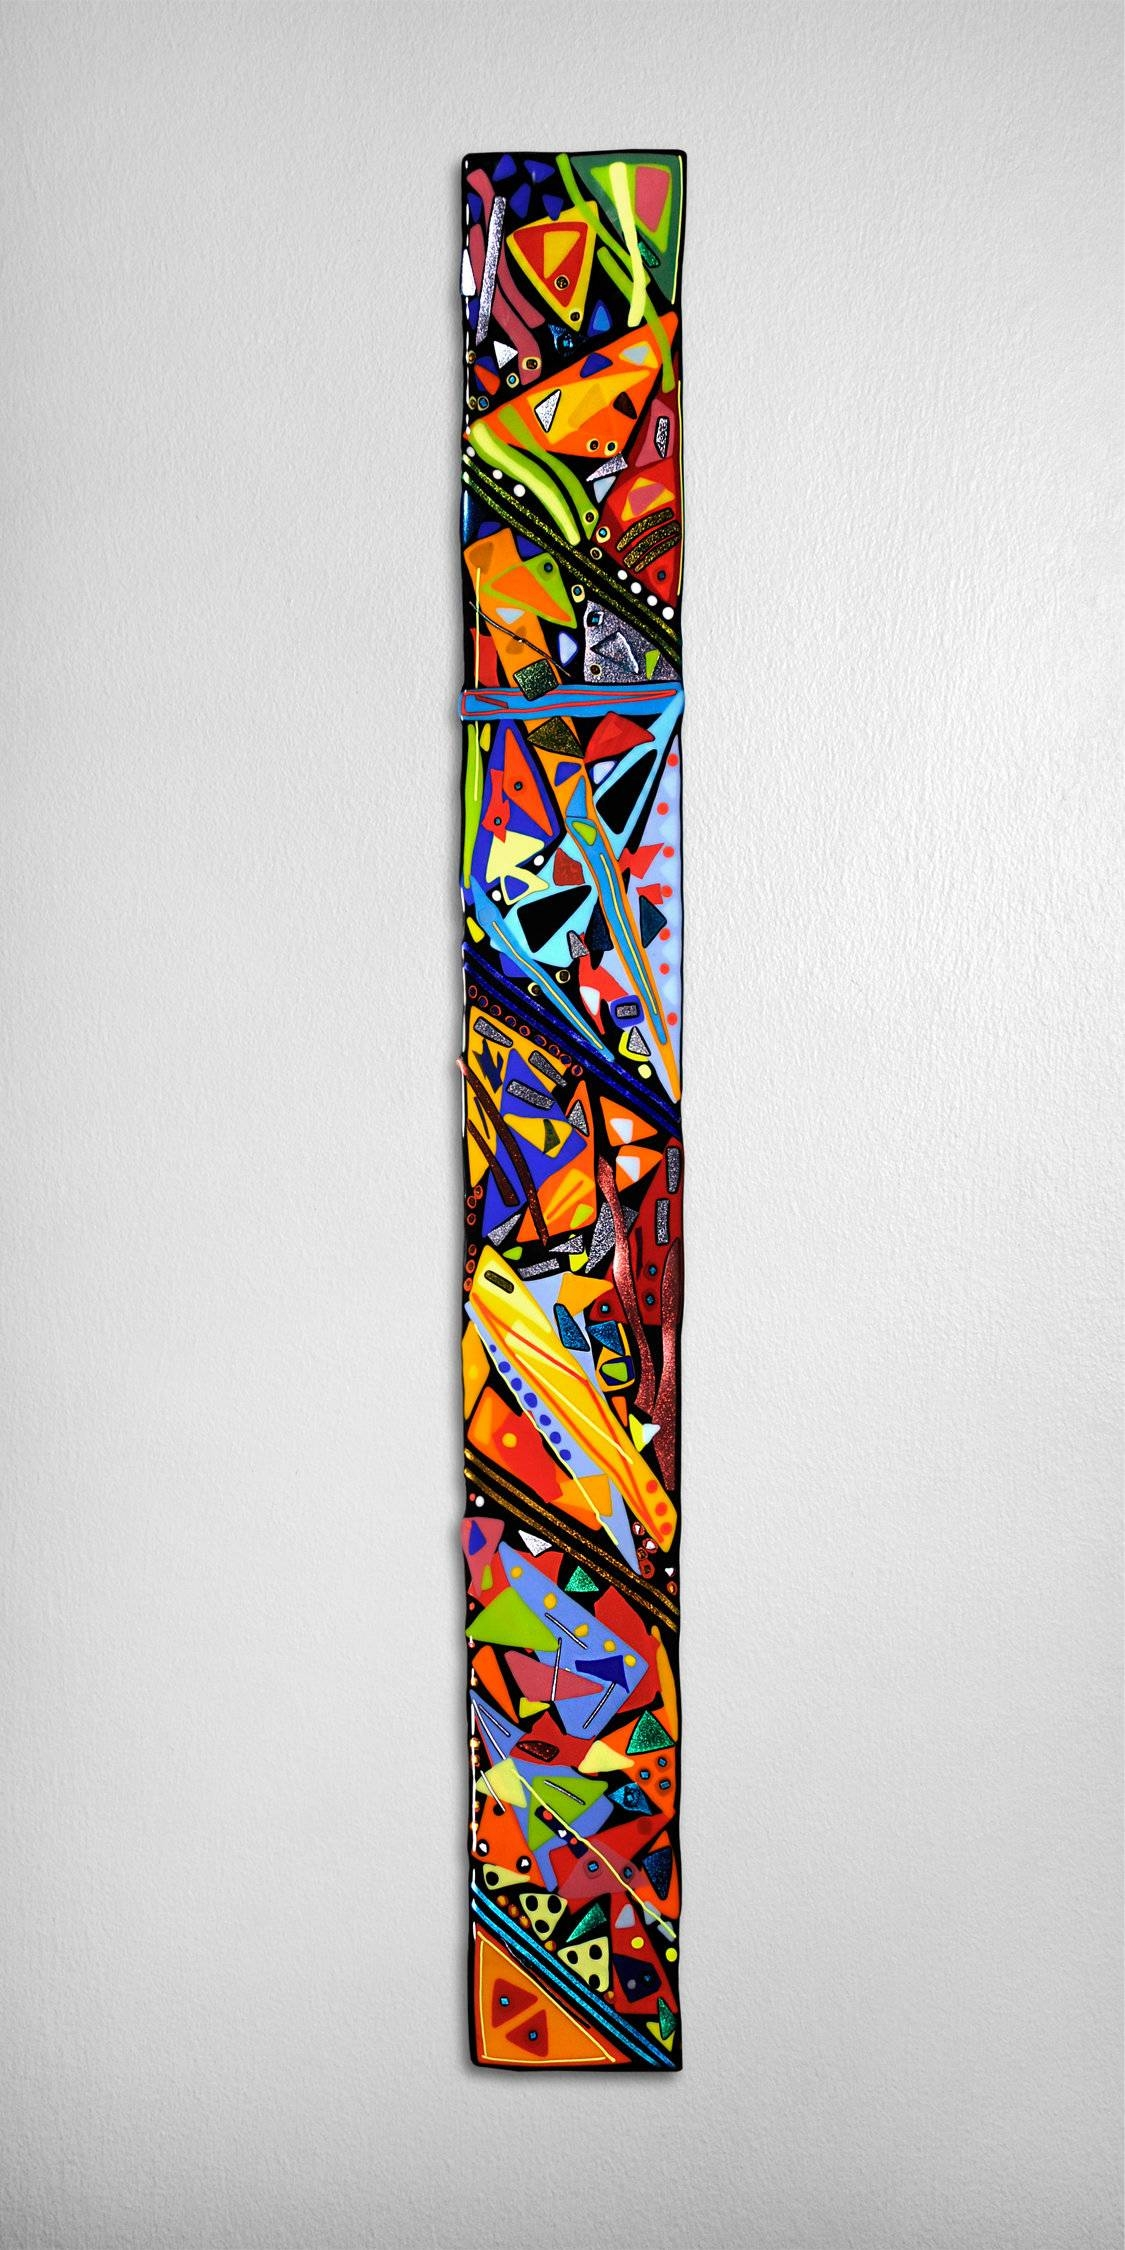 Mardi Gras Wall Panelhelen Rudy (art Glass Wall Sculpture With Regard To Current Glass Wall Art Panels (View 8 of 20)